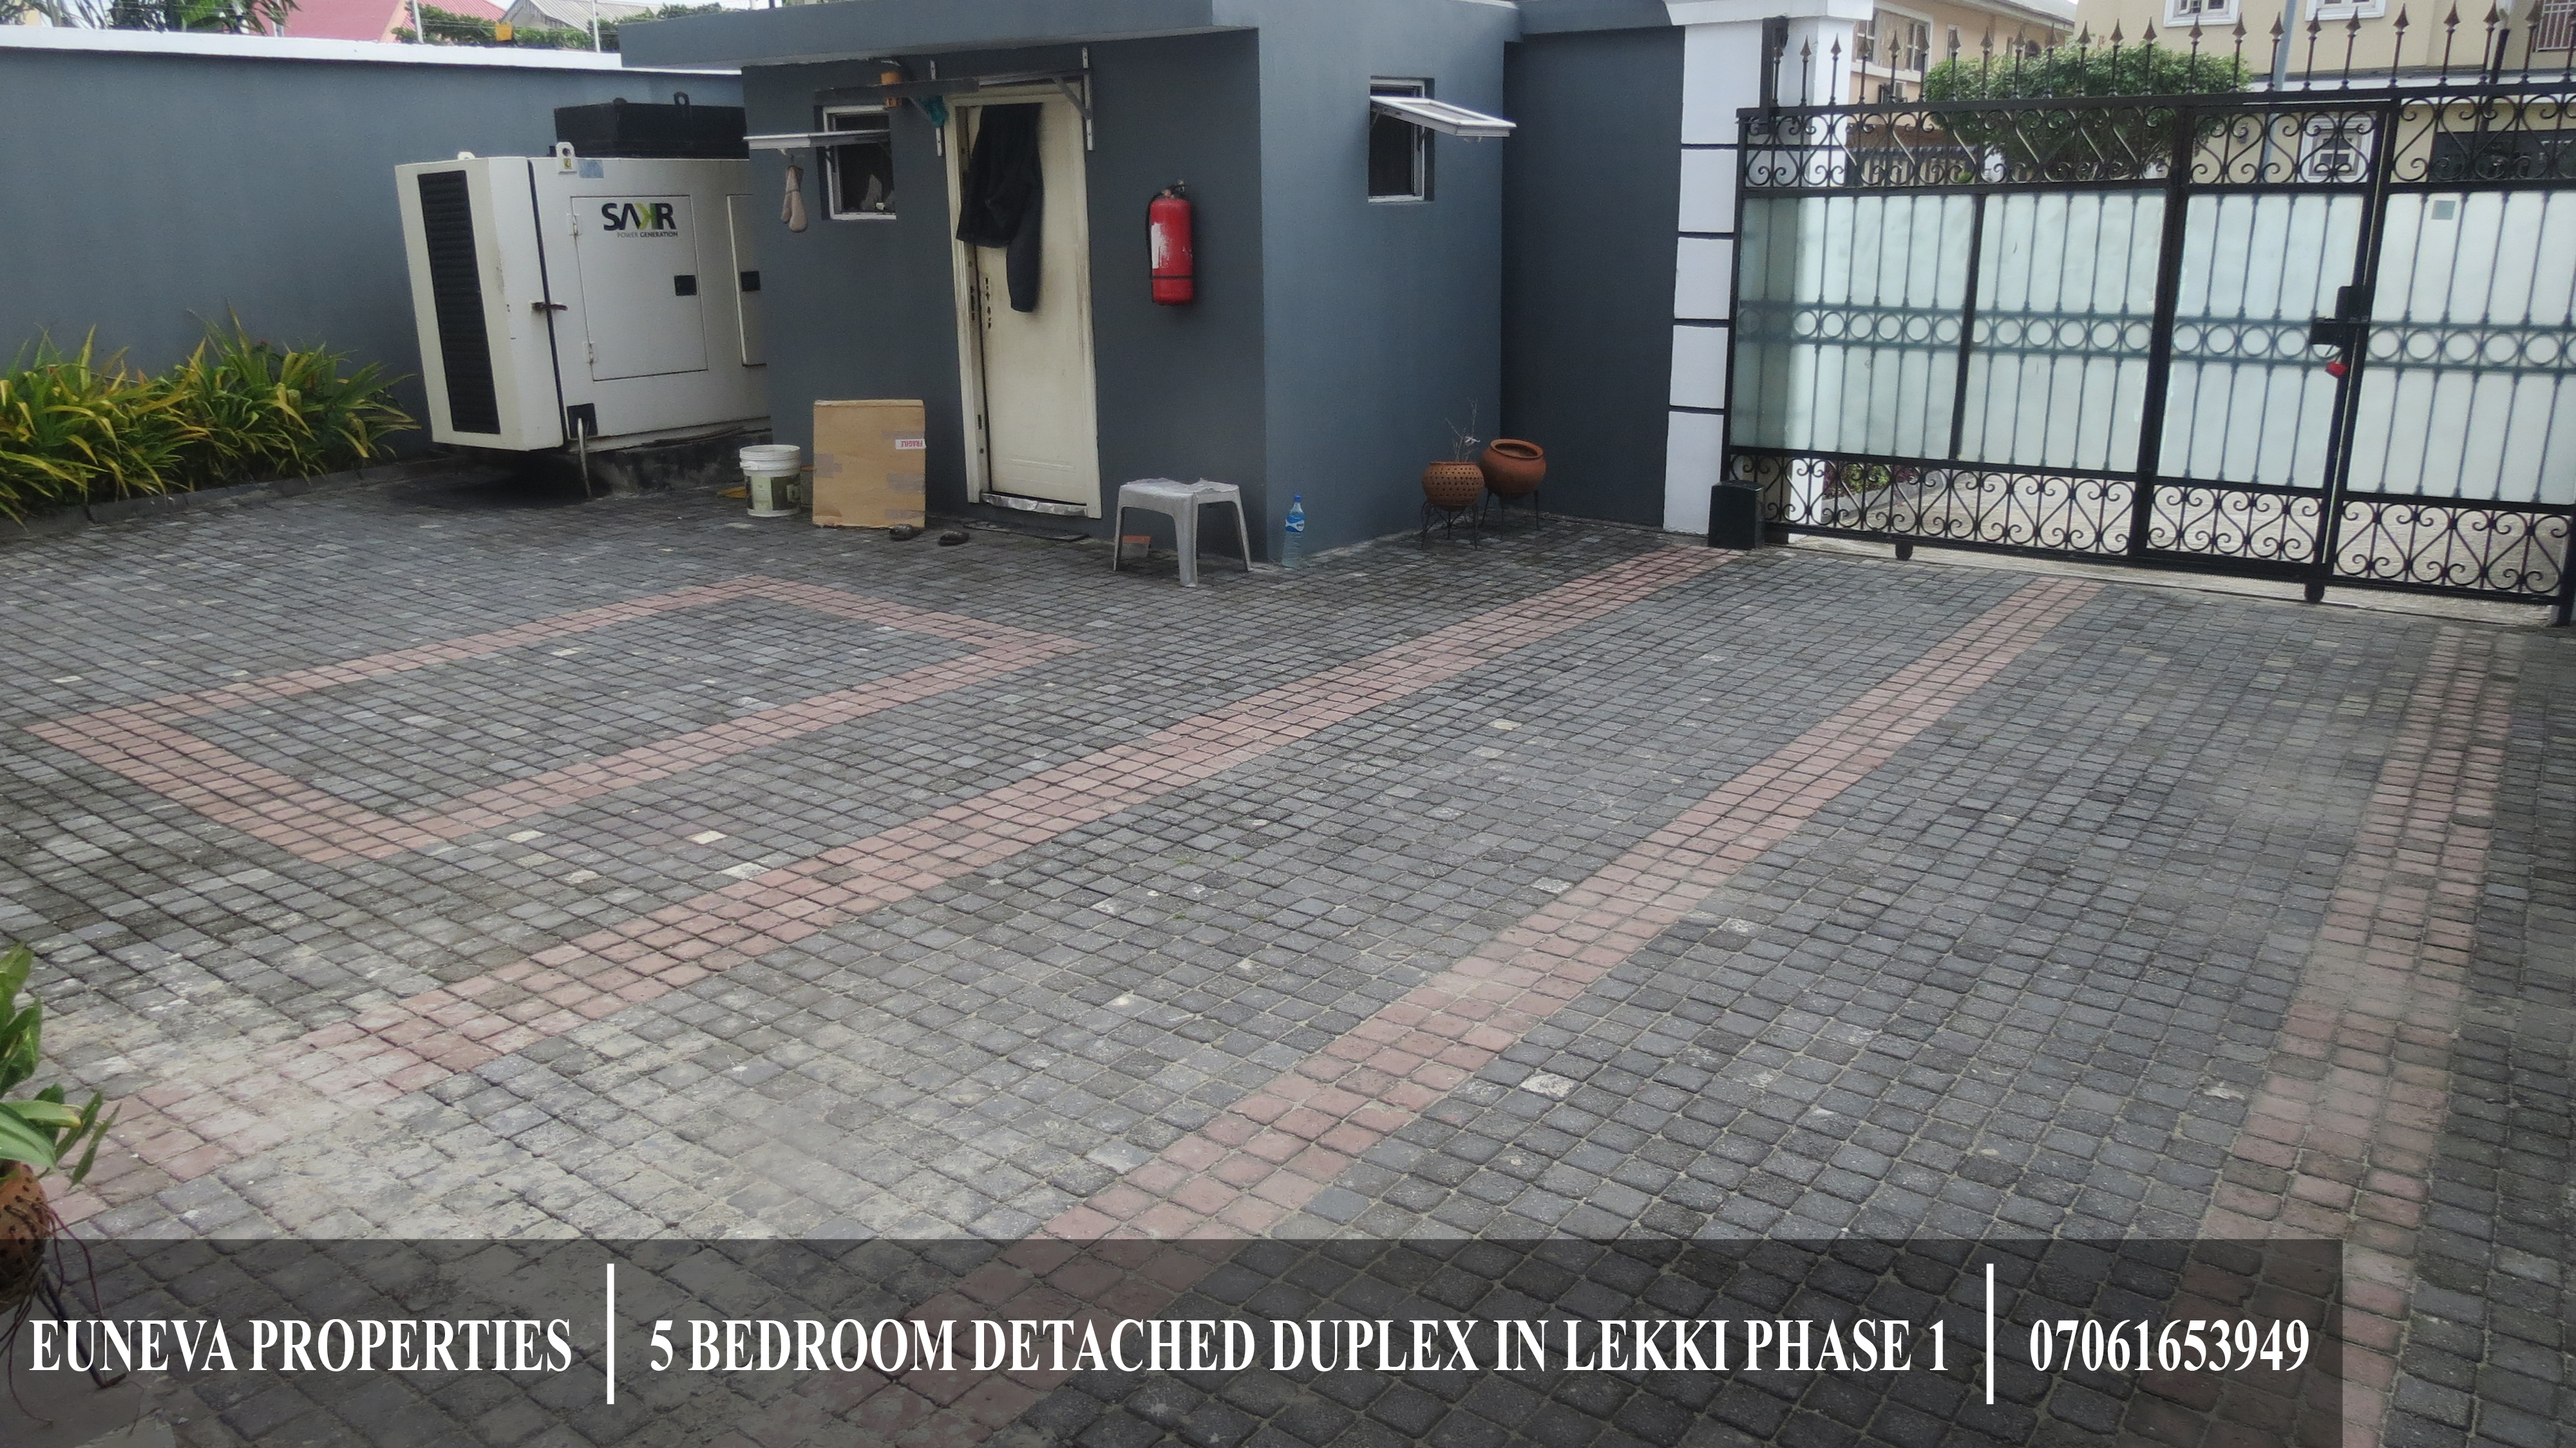 Neatly Renovated 5 Bedroom Detached House for Sale in Lekki Phase 1 on 473sqm with 33kva Generator